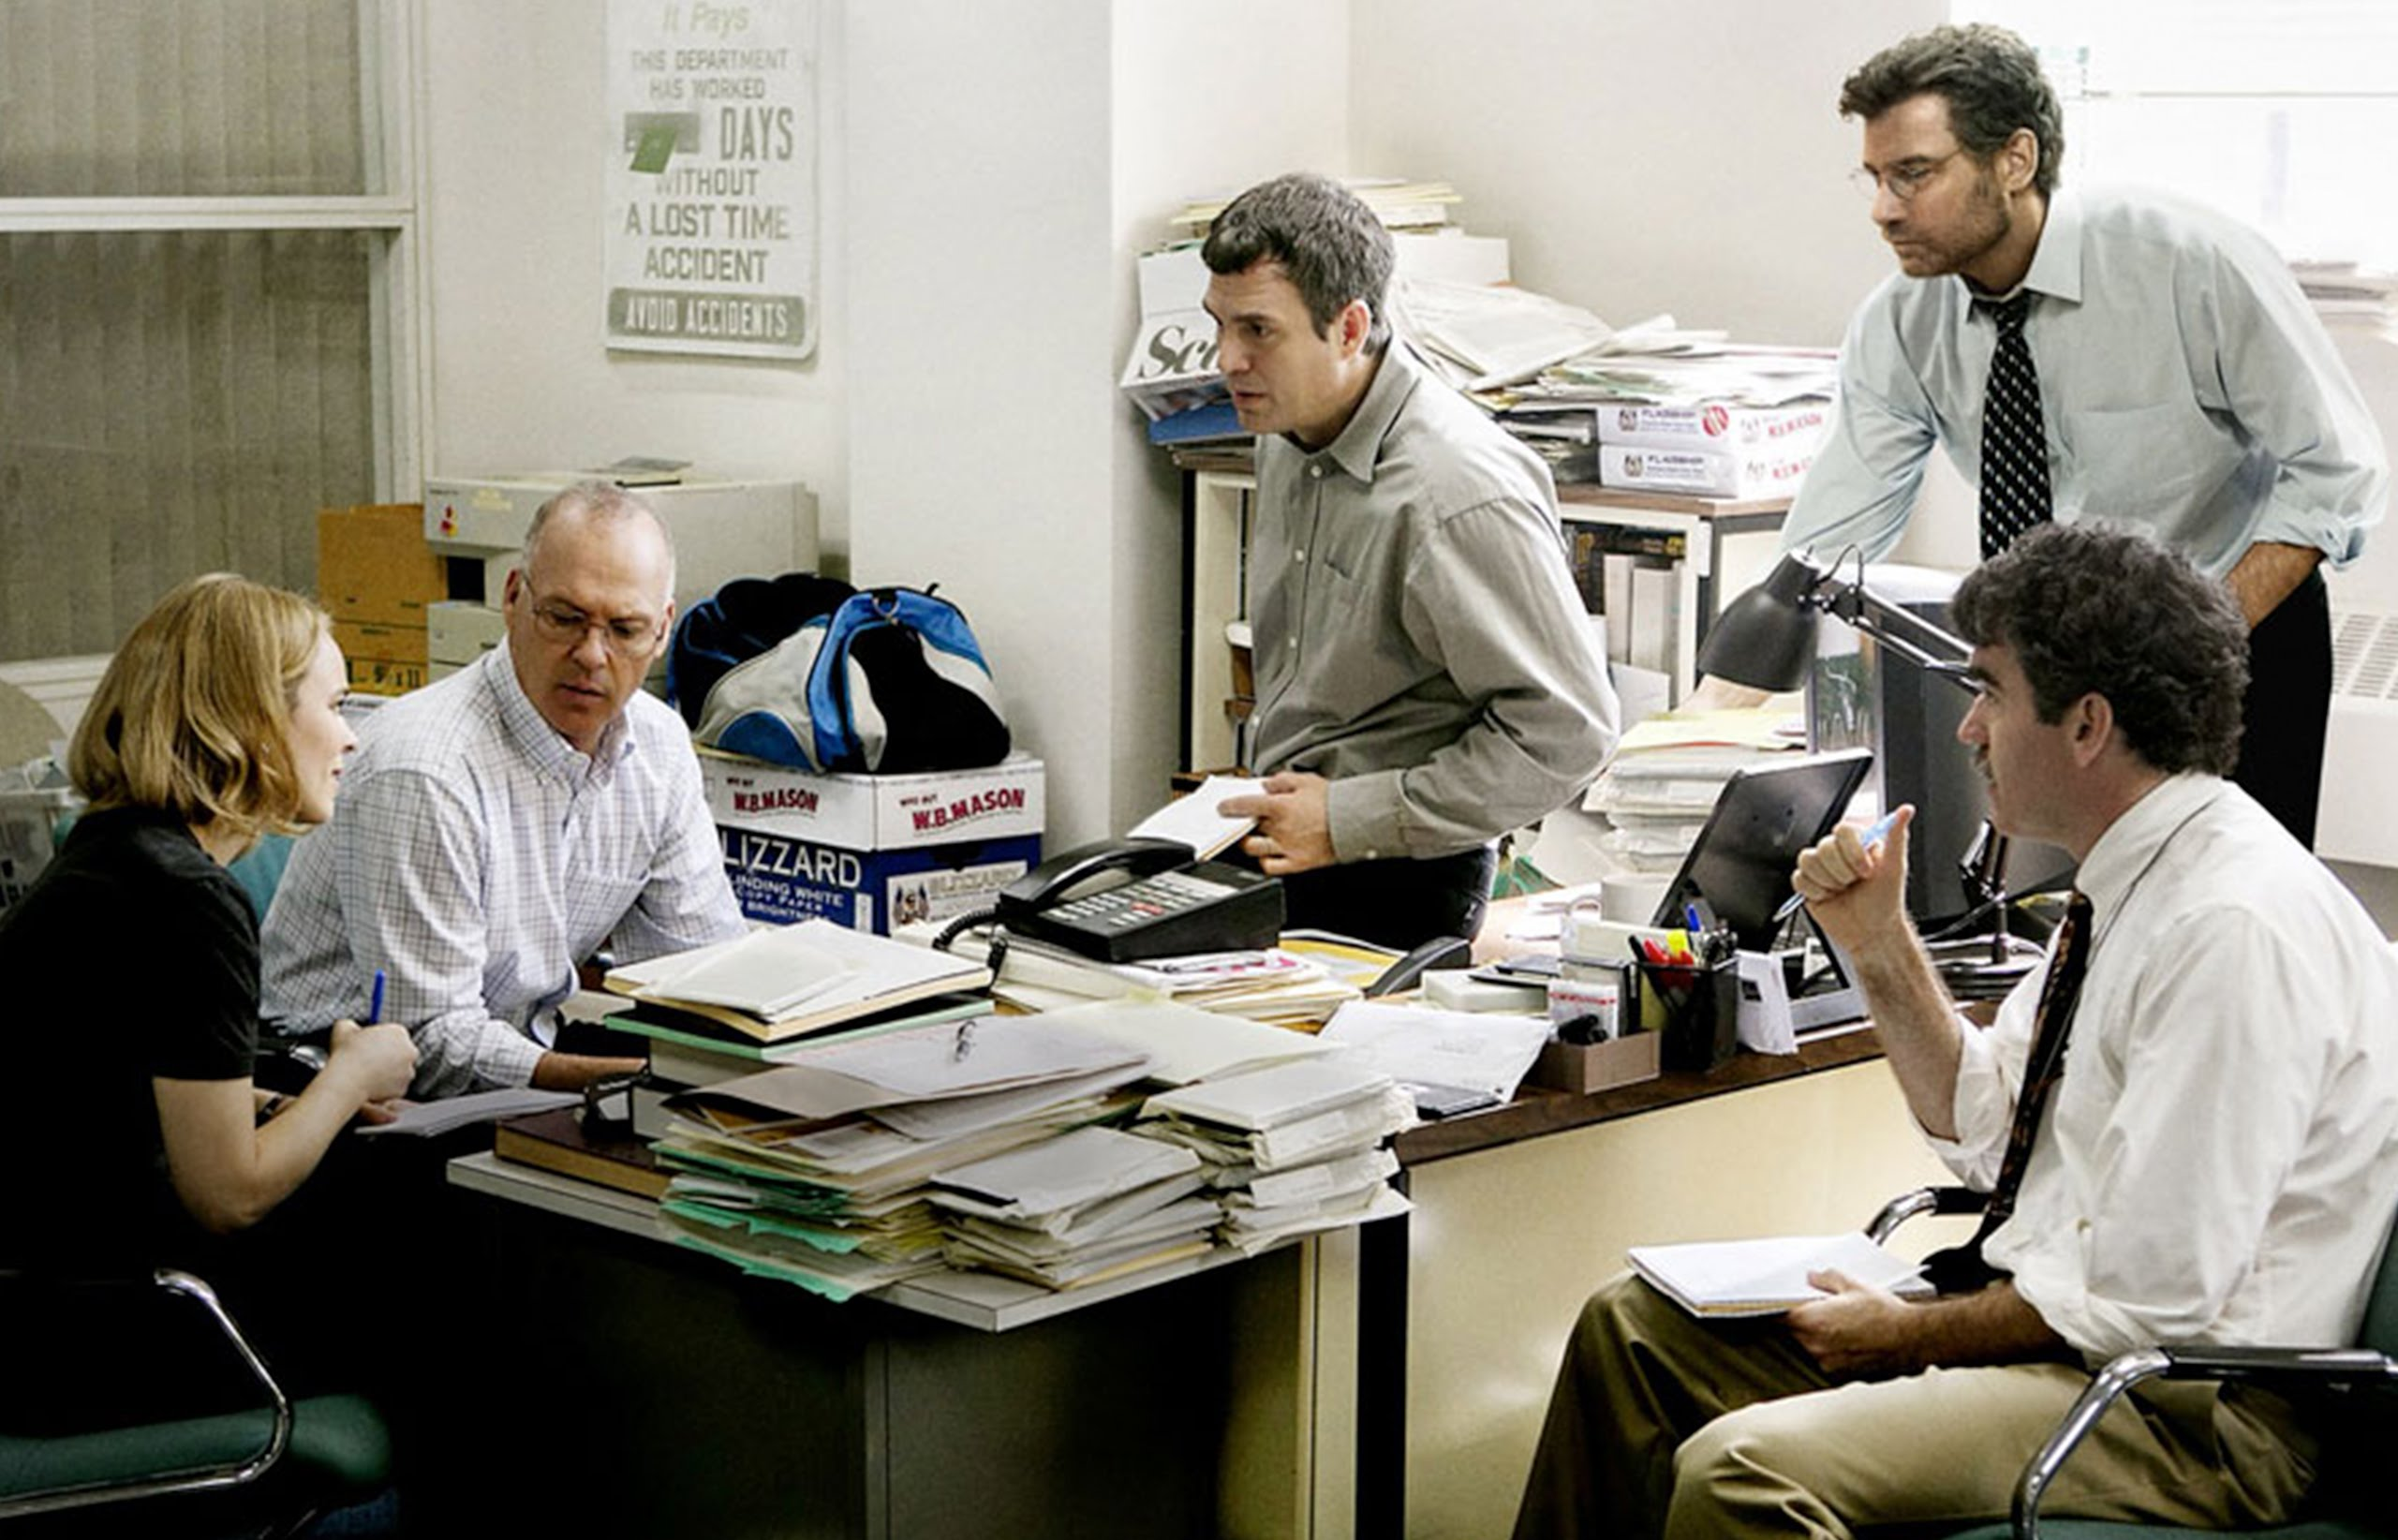 spotlight-movie1.jpg (379.64 Kb)